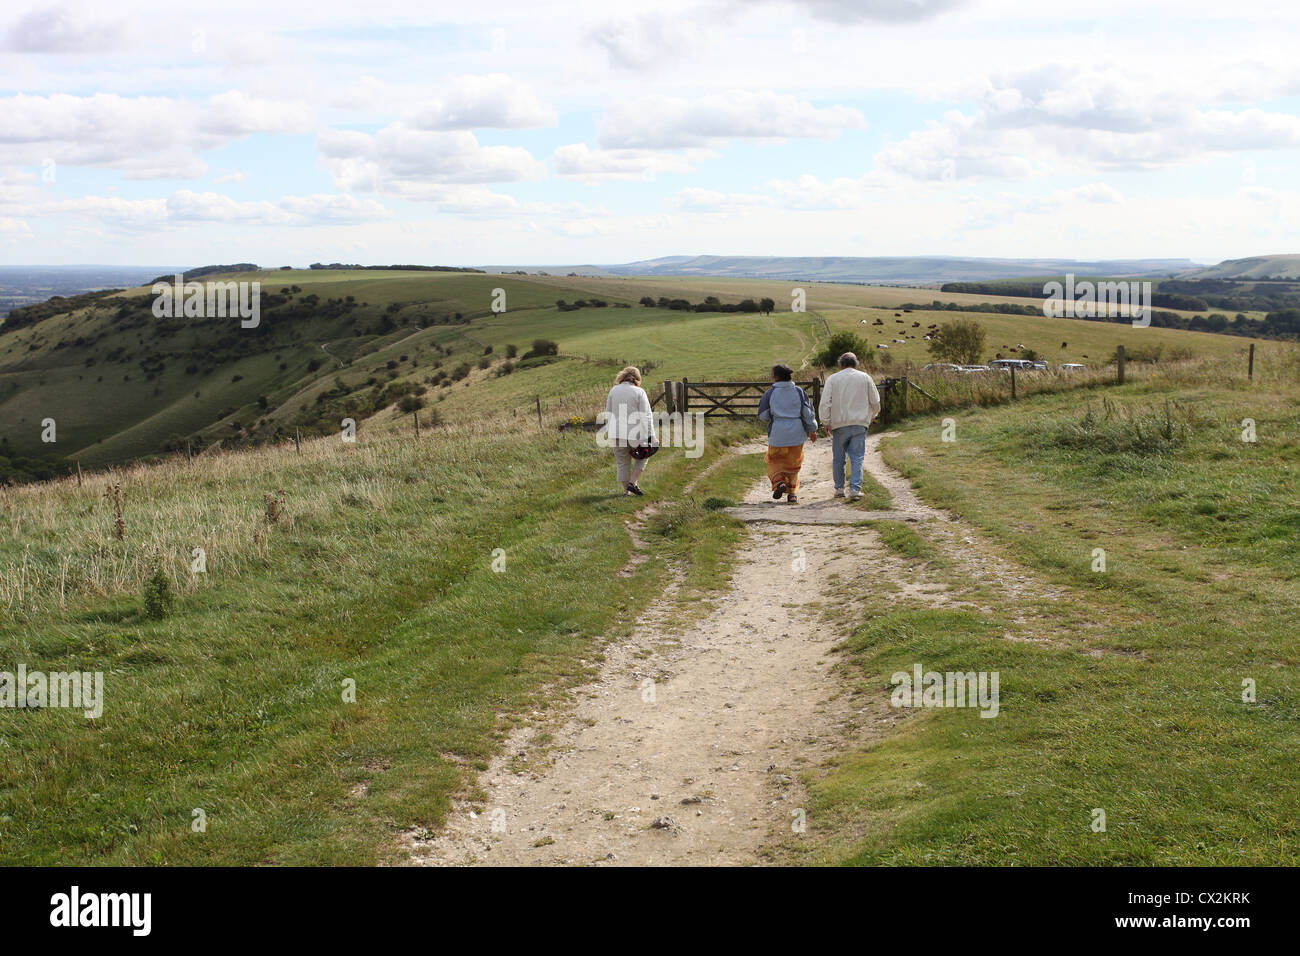 Walkers on a chalk footpath at Ditchling Beacon, East Sussex - Stock Image